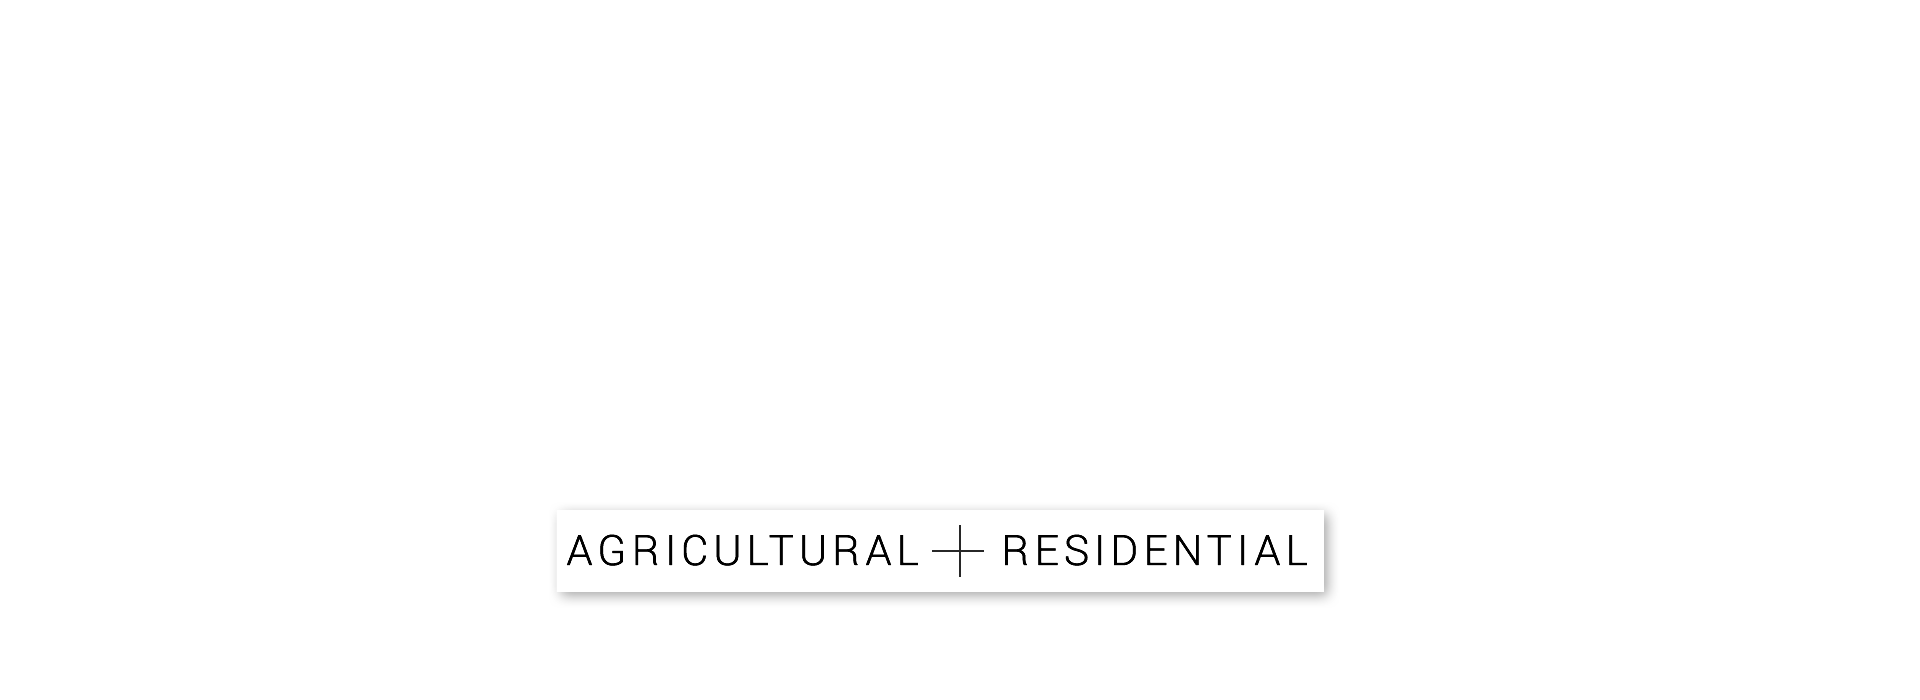 Slide Overlay text - Agricultural + Residential